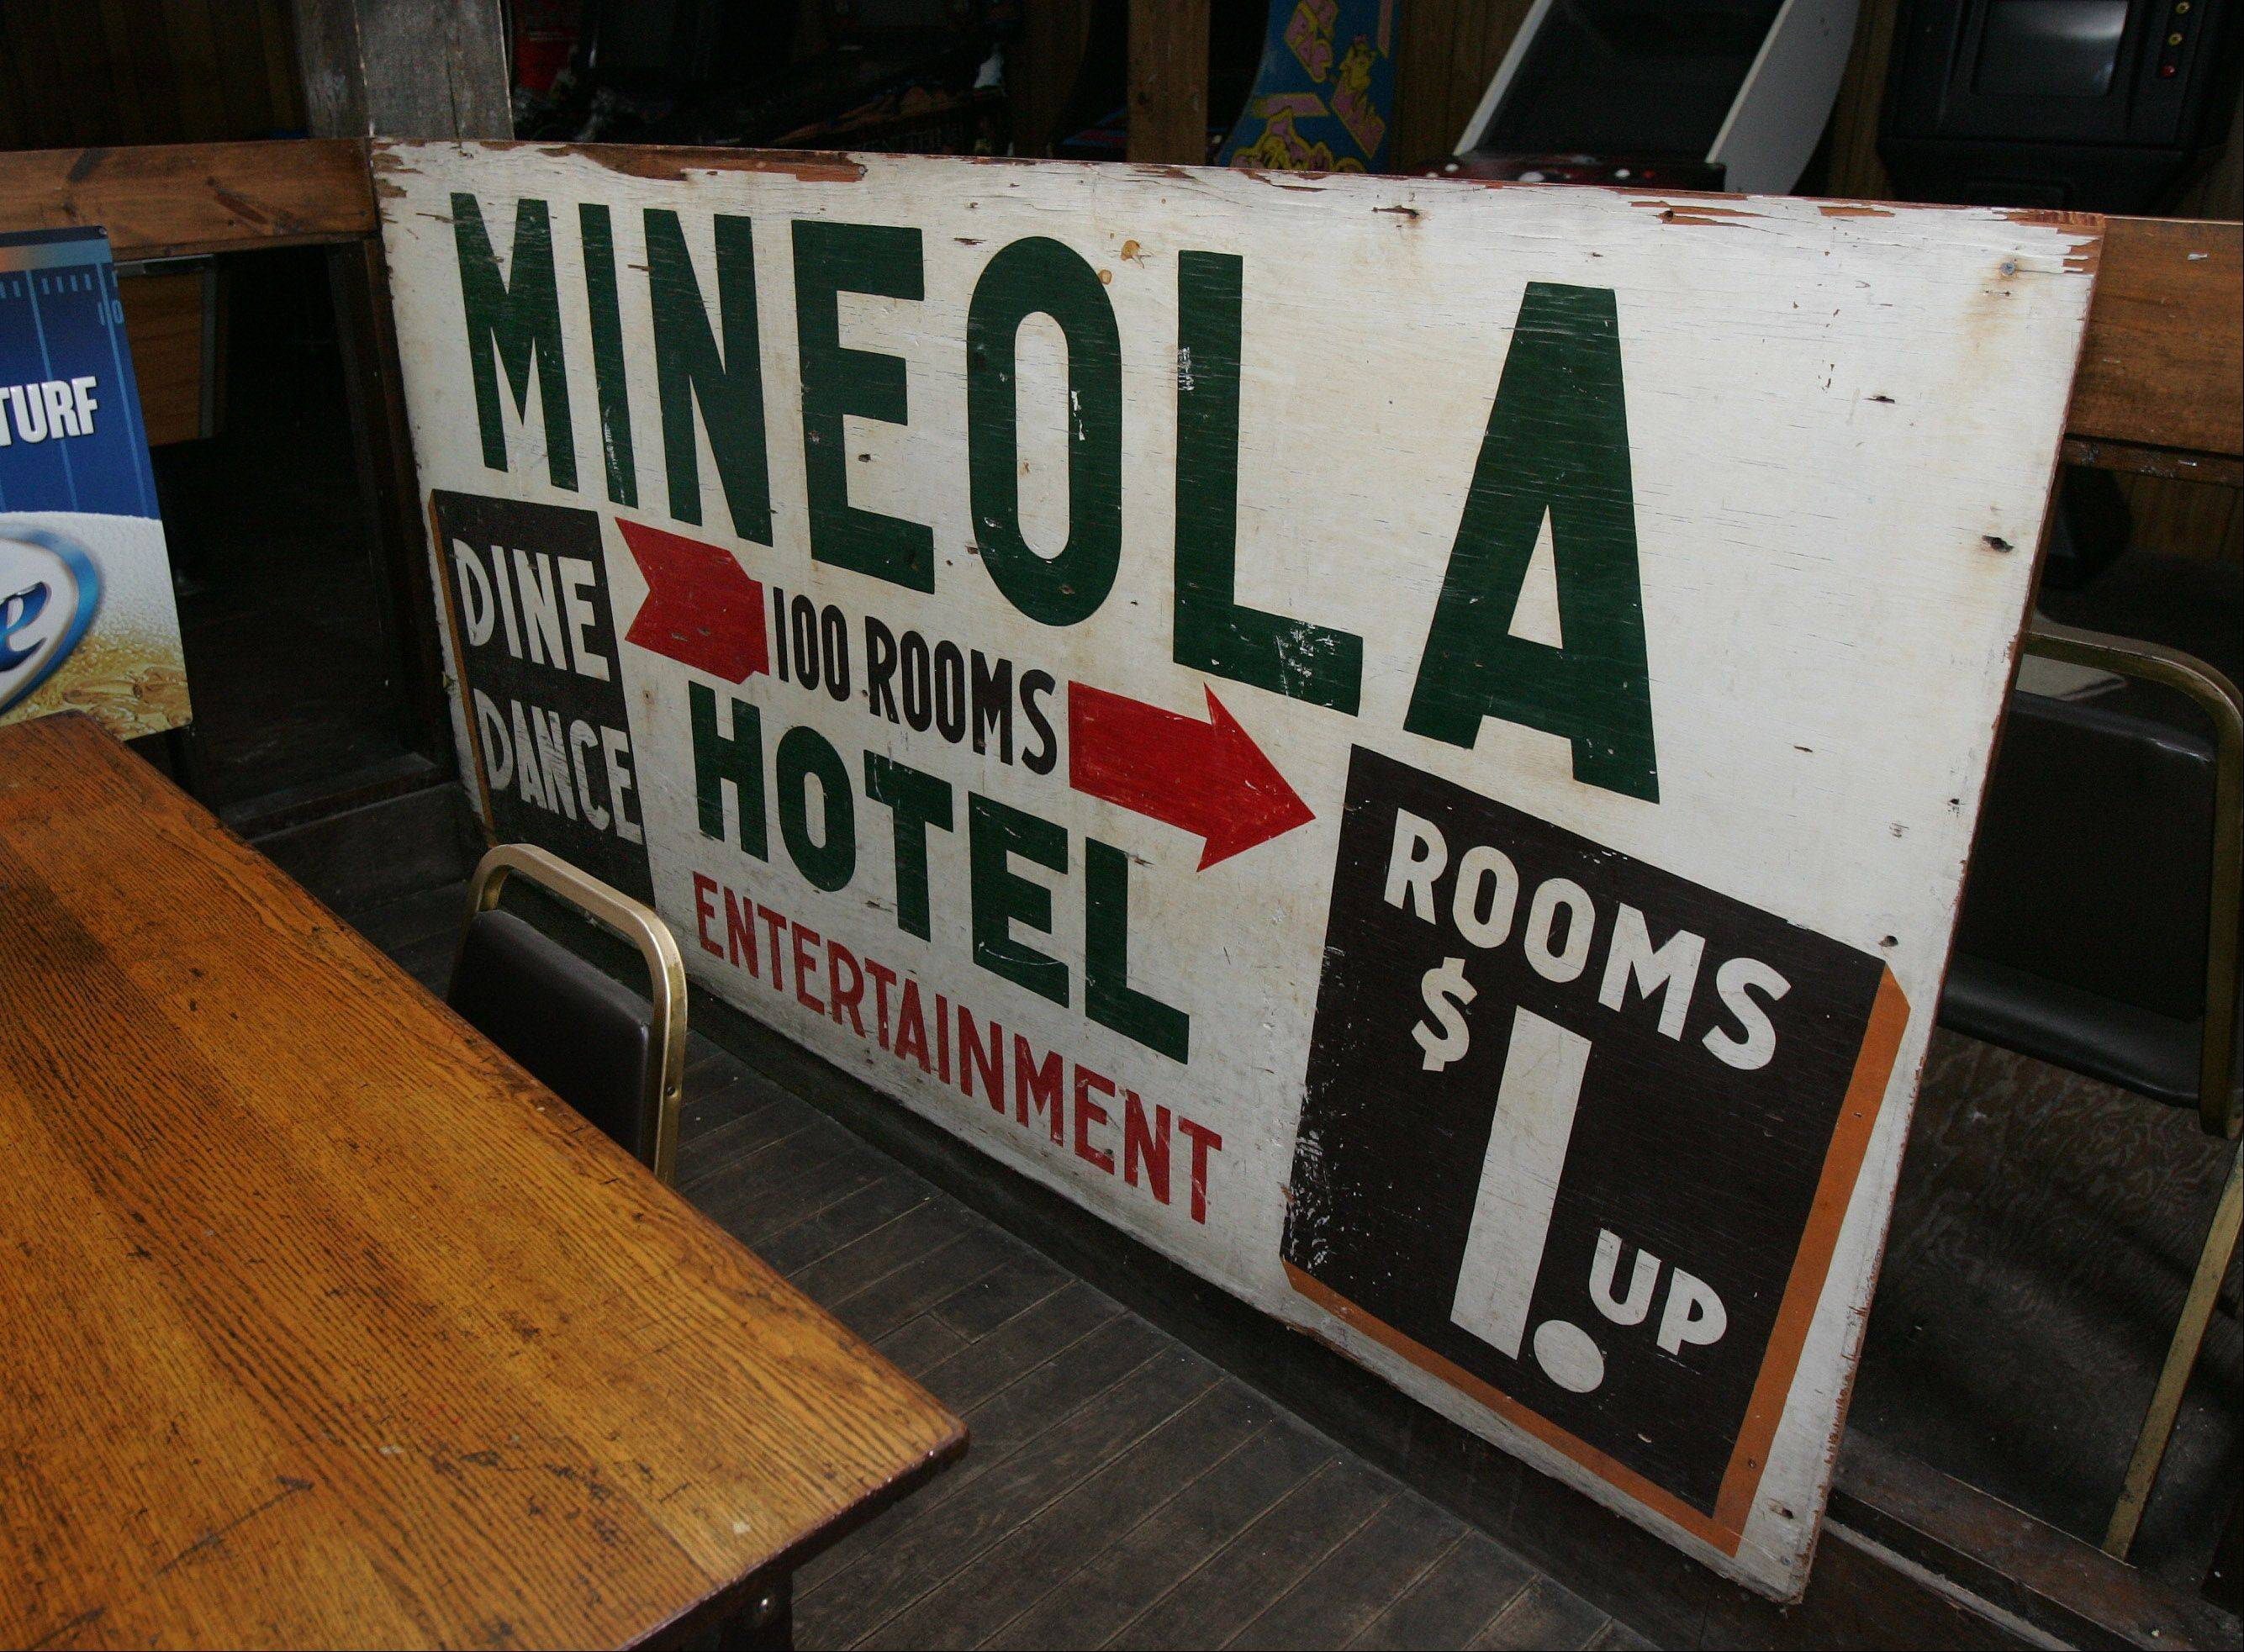 An antique sign showing room rates at the Mineola Hotel in Fox Lake was on display in the lounge. Built in 1894, the shuttered Mineola is possibly the largest wood-frame building in the state, according to Landmarks Illinois.